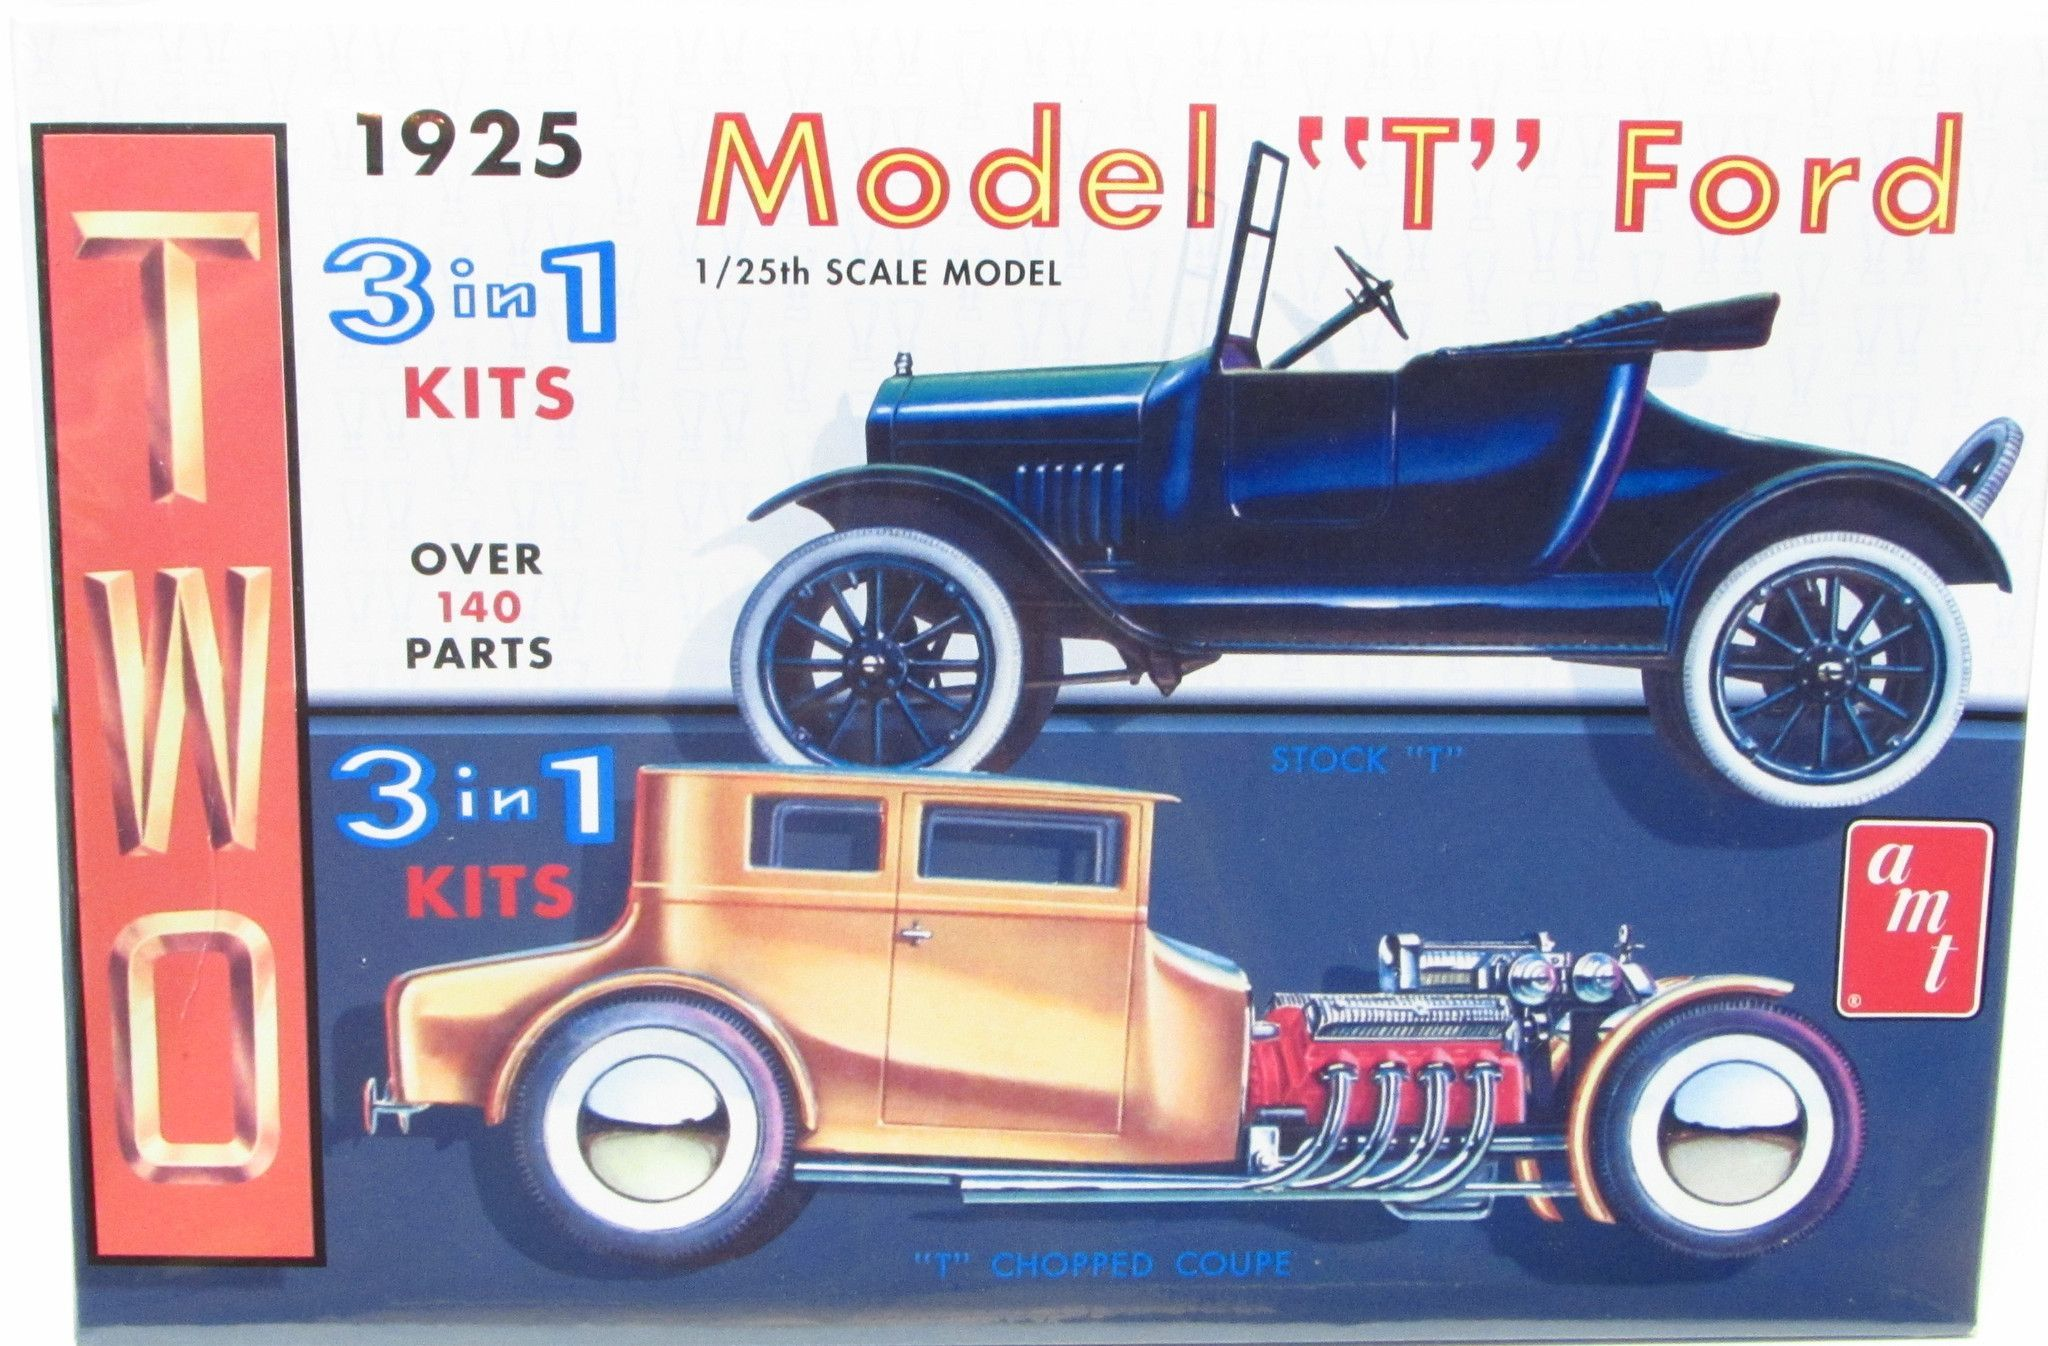 1925 Model T Ford 1 25 Scale Amt 626 New Model Kit 2 Complete Models In 1 Kit Model Cars Building Model Kit Model T